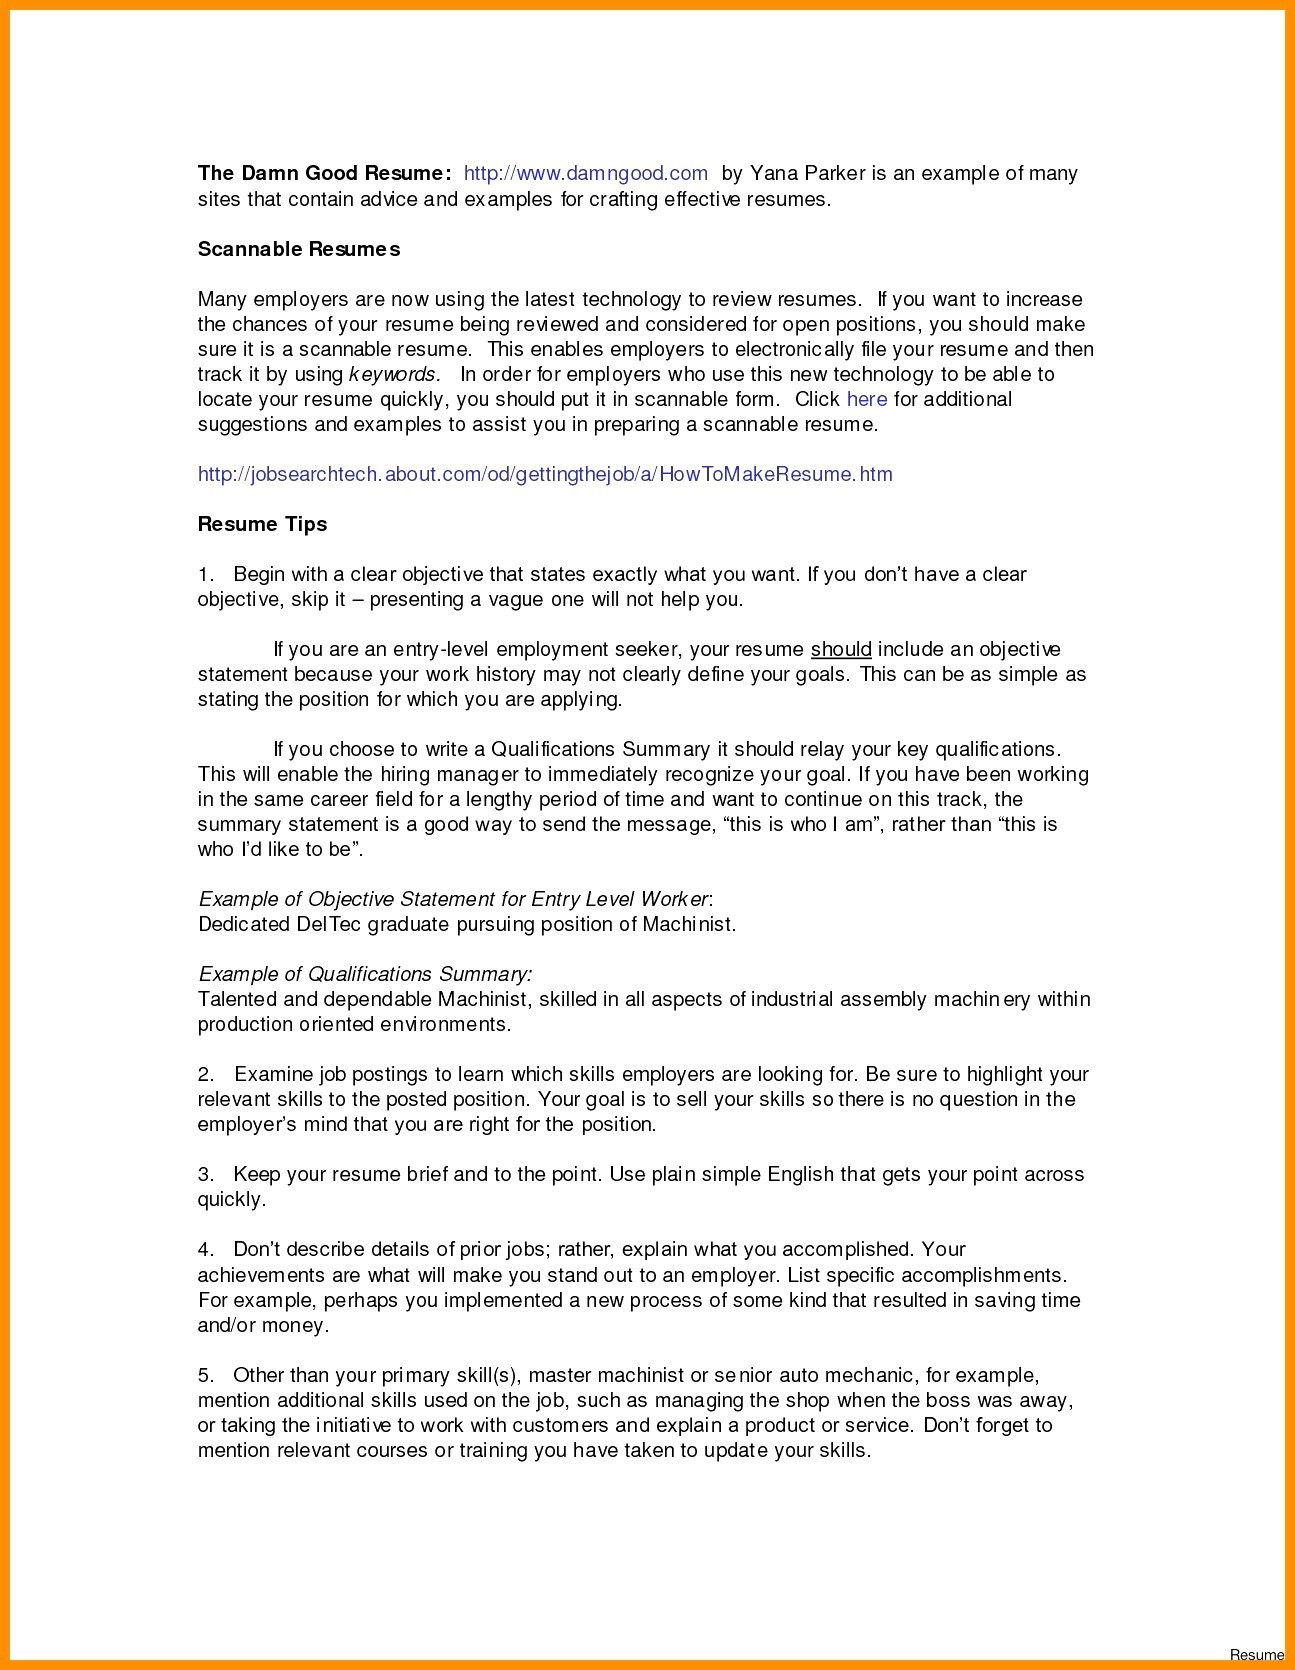 Resume for Mba Application - Mba Application Resume